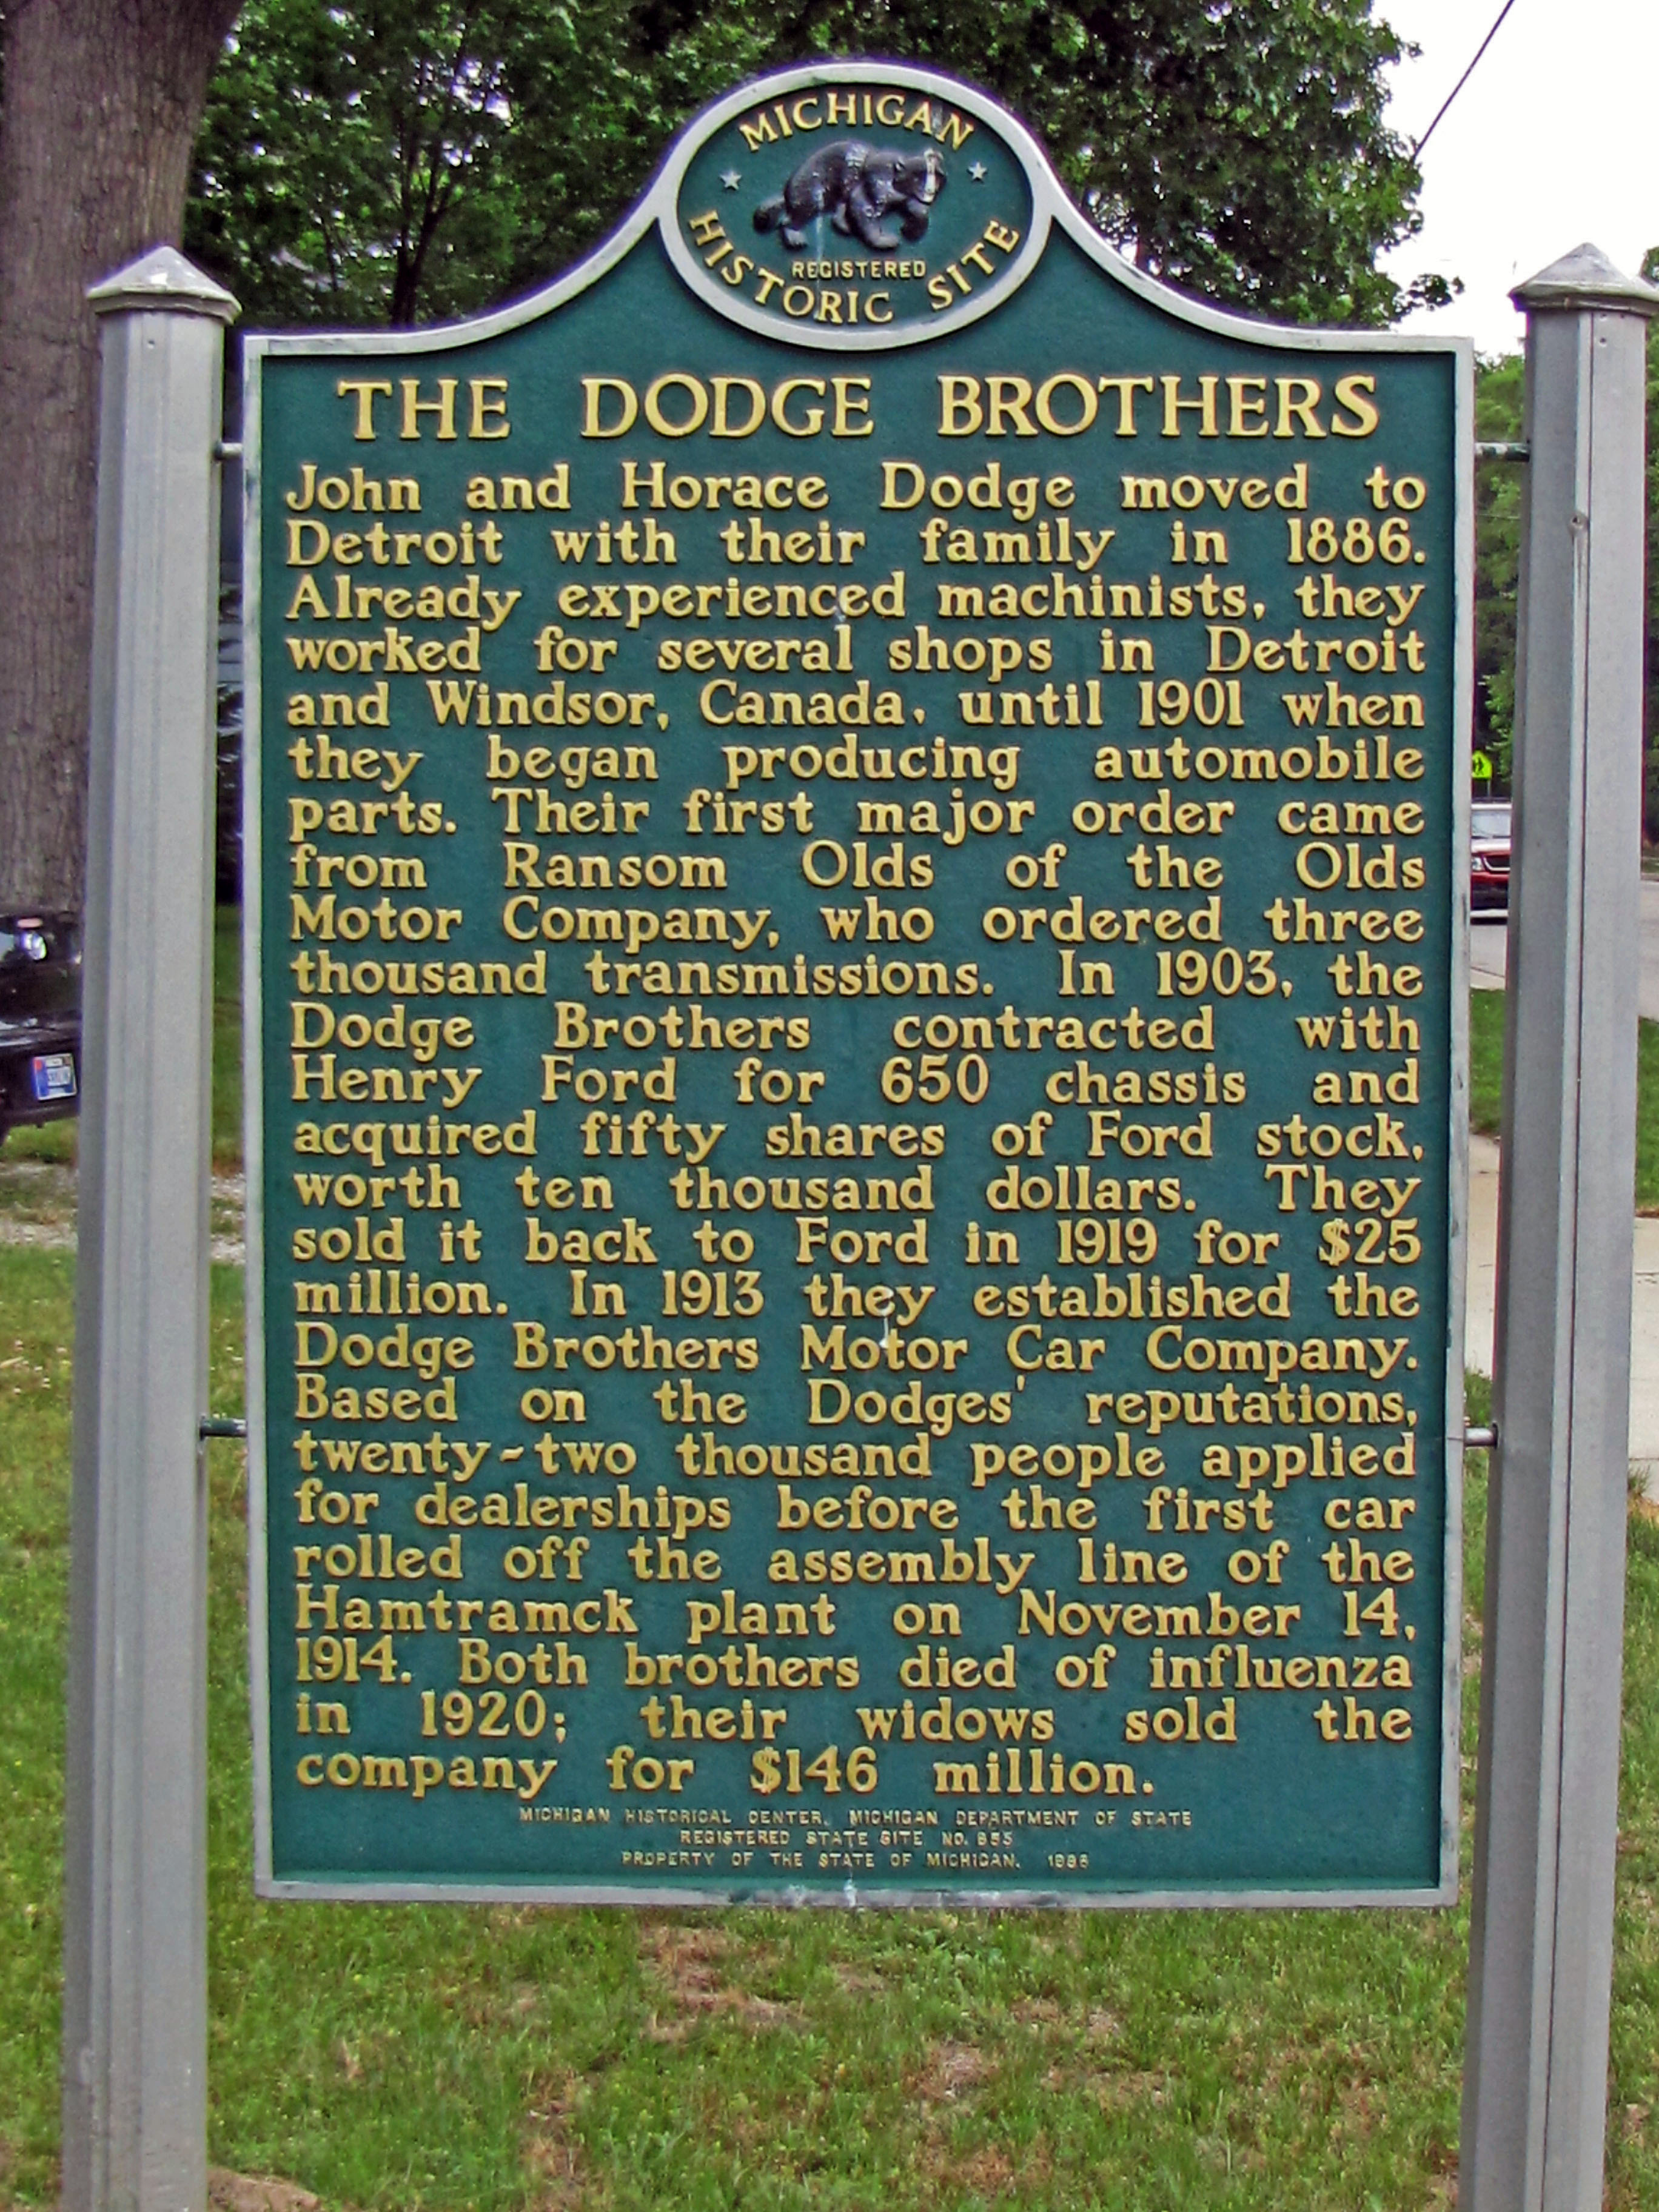 Birthplace Of John And Horace Dodge Commemorative Designation